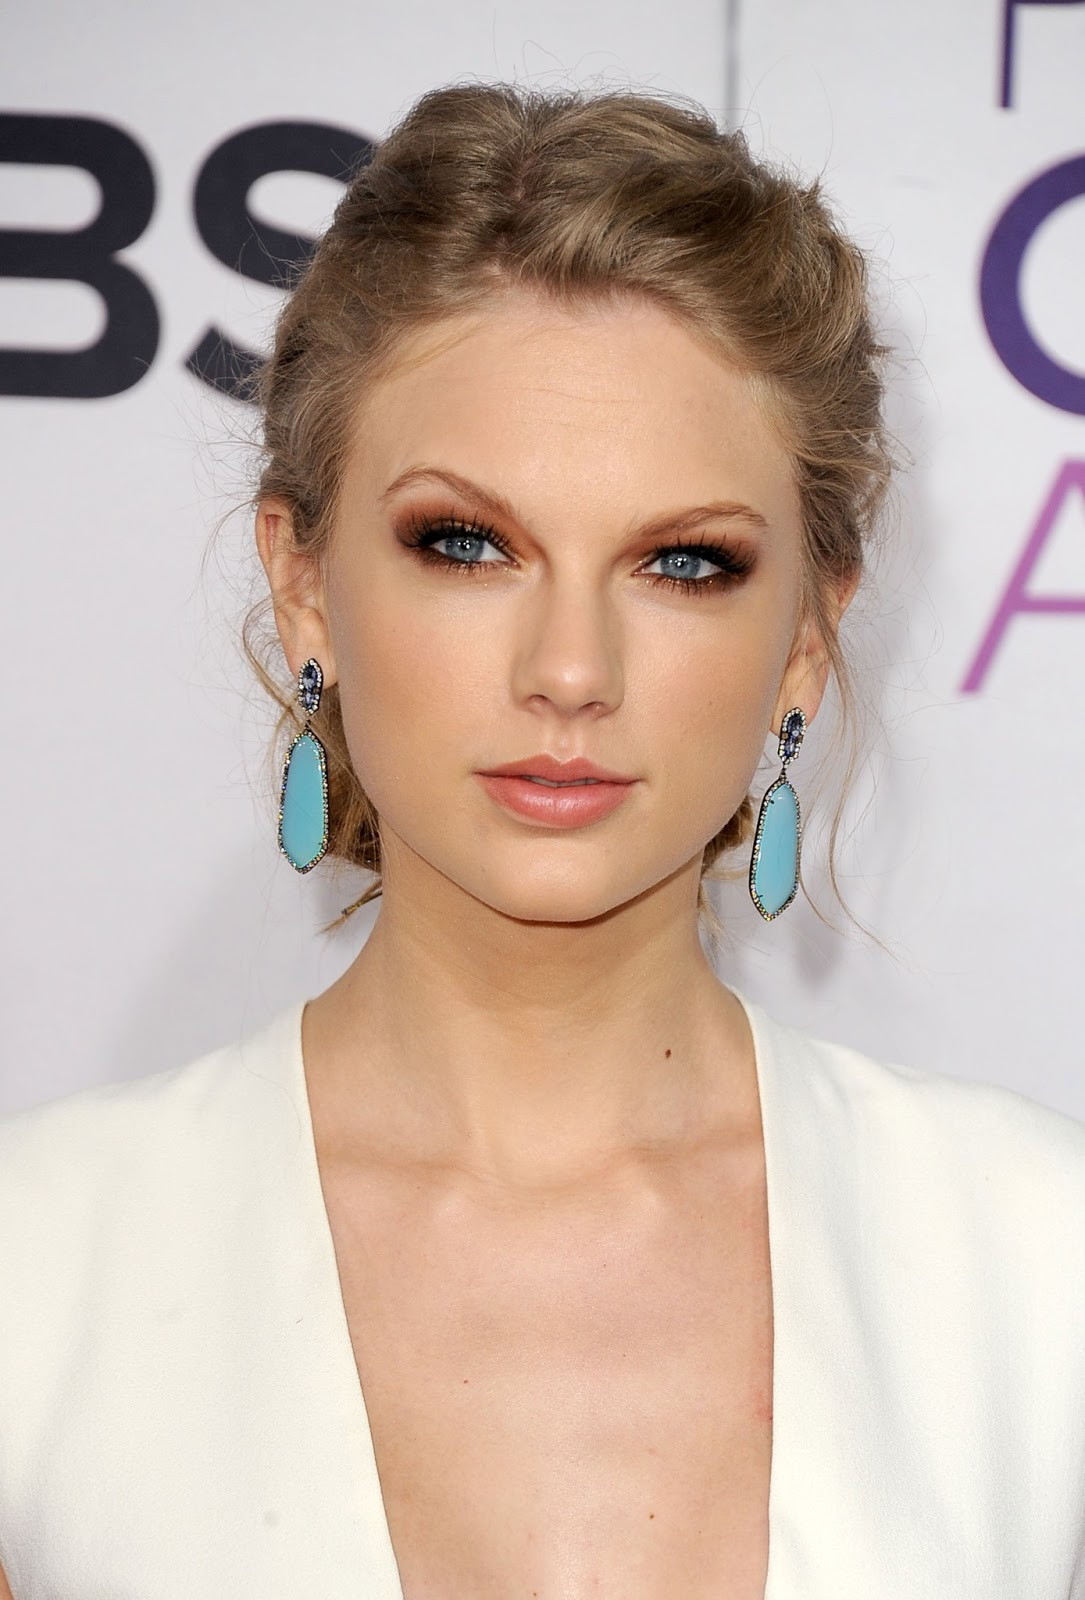 http://3.bp.blogspot.com/-KYwc-a3PwyU/UPLPQCdzYjI/AAAAAAAAA4I/shu2Yp1eYdc/s1600/taylor-swift-peoples-choice-awards-red-carpet.jpg